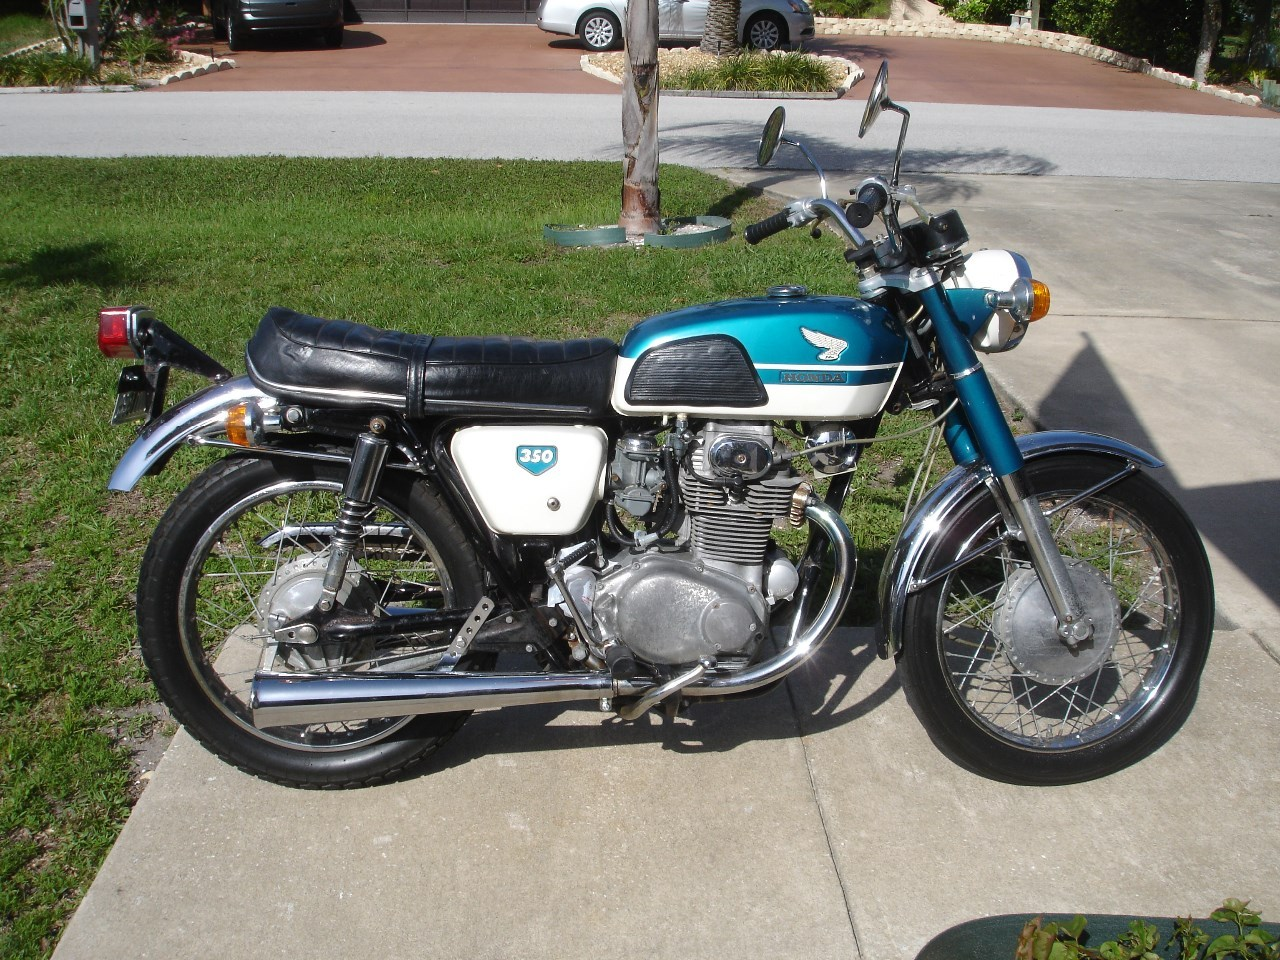 1969 Supply Honda Motorcycles Transaction Price Cb 350, New and Used Motorcycles Prices and Values